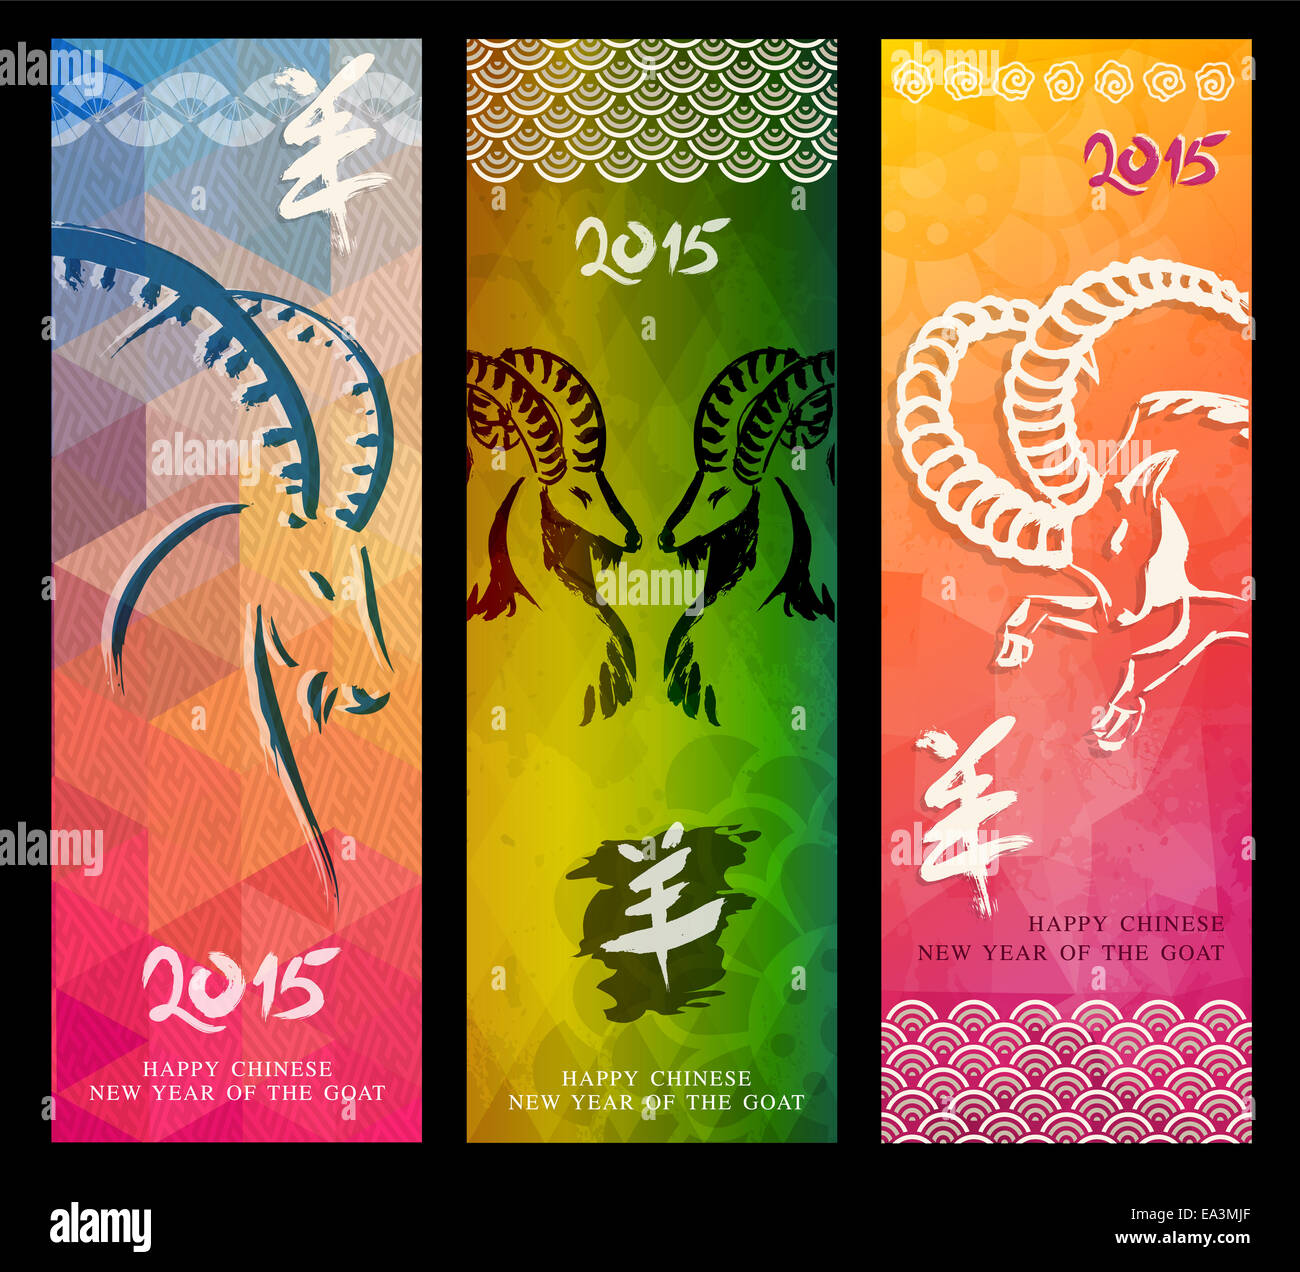 New Year Triangle Goat 2015 Stock Photos New Year Triangle Goat